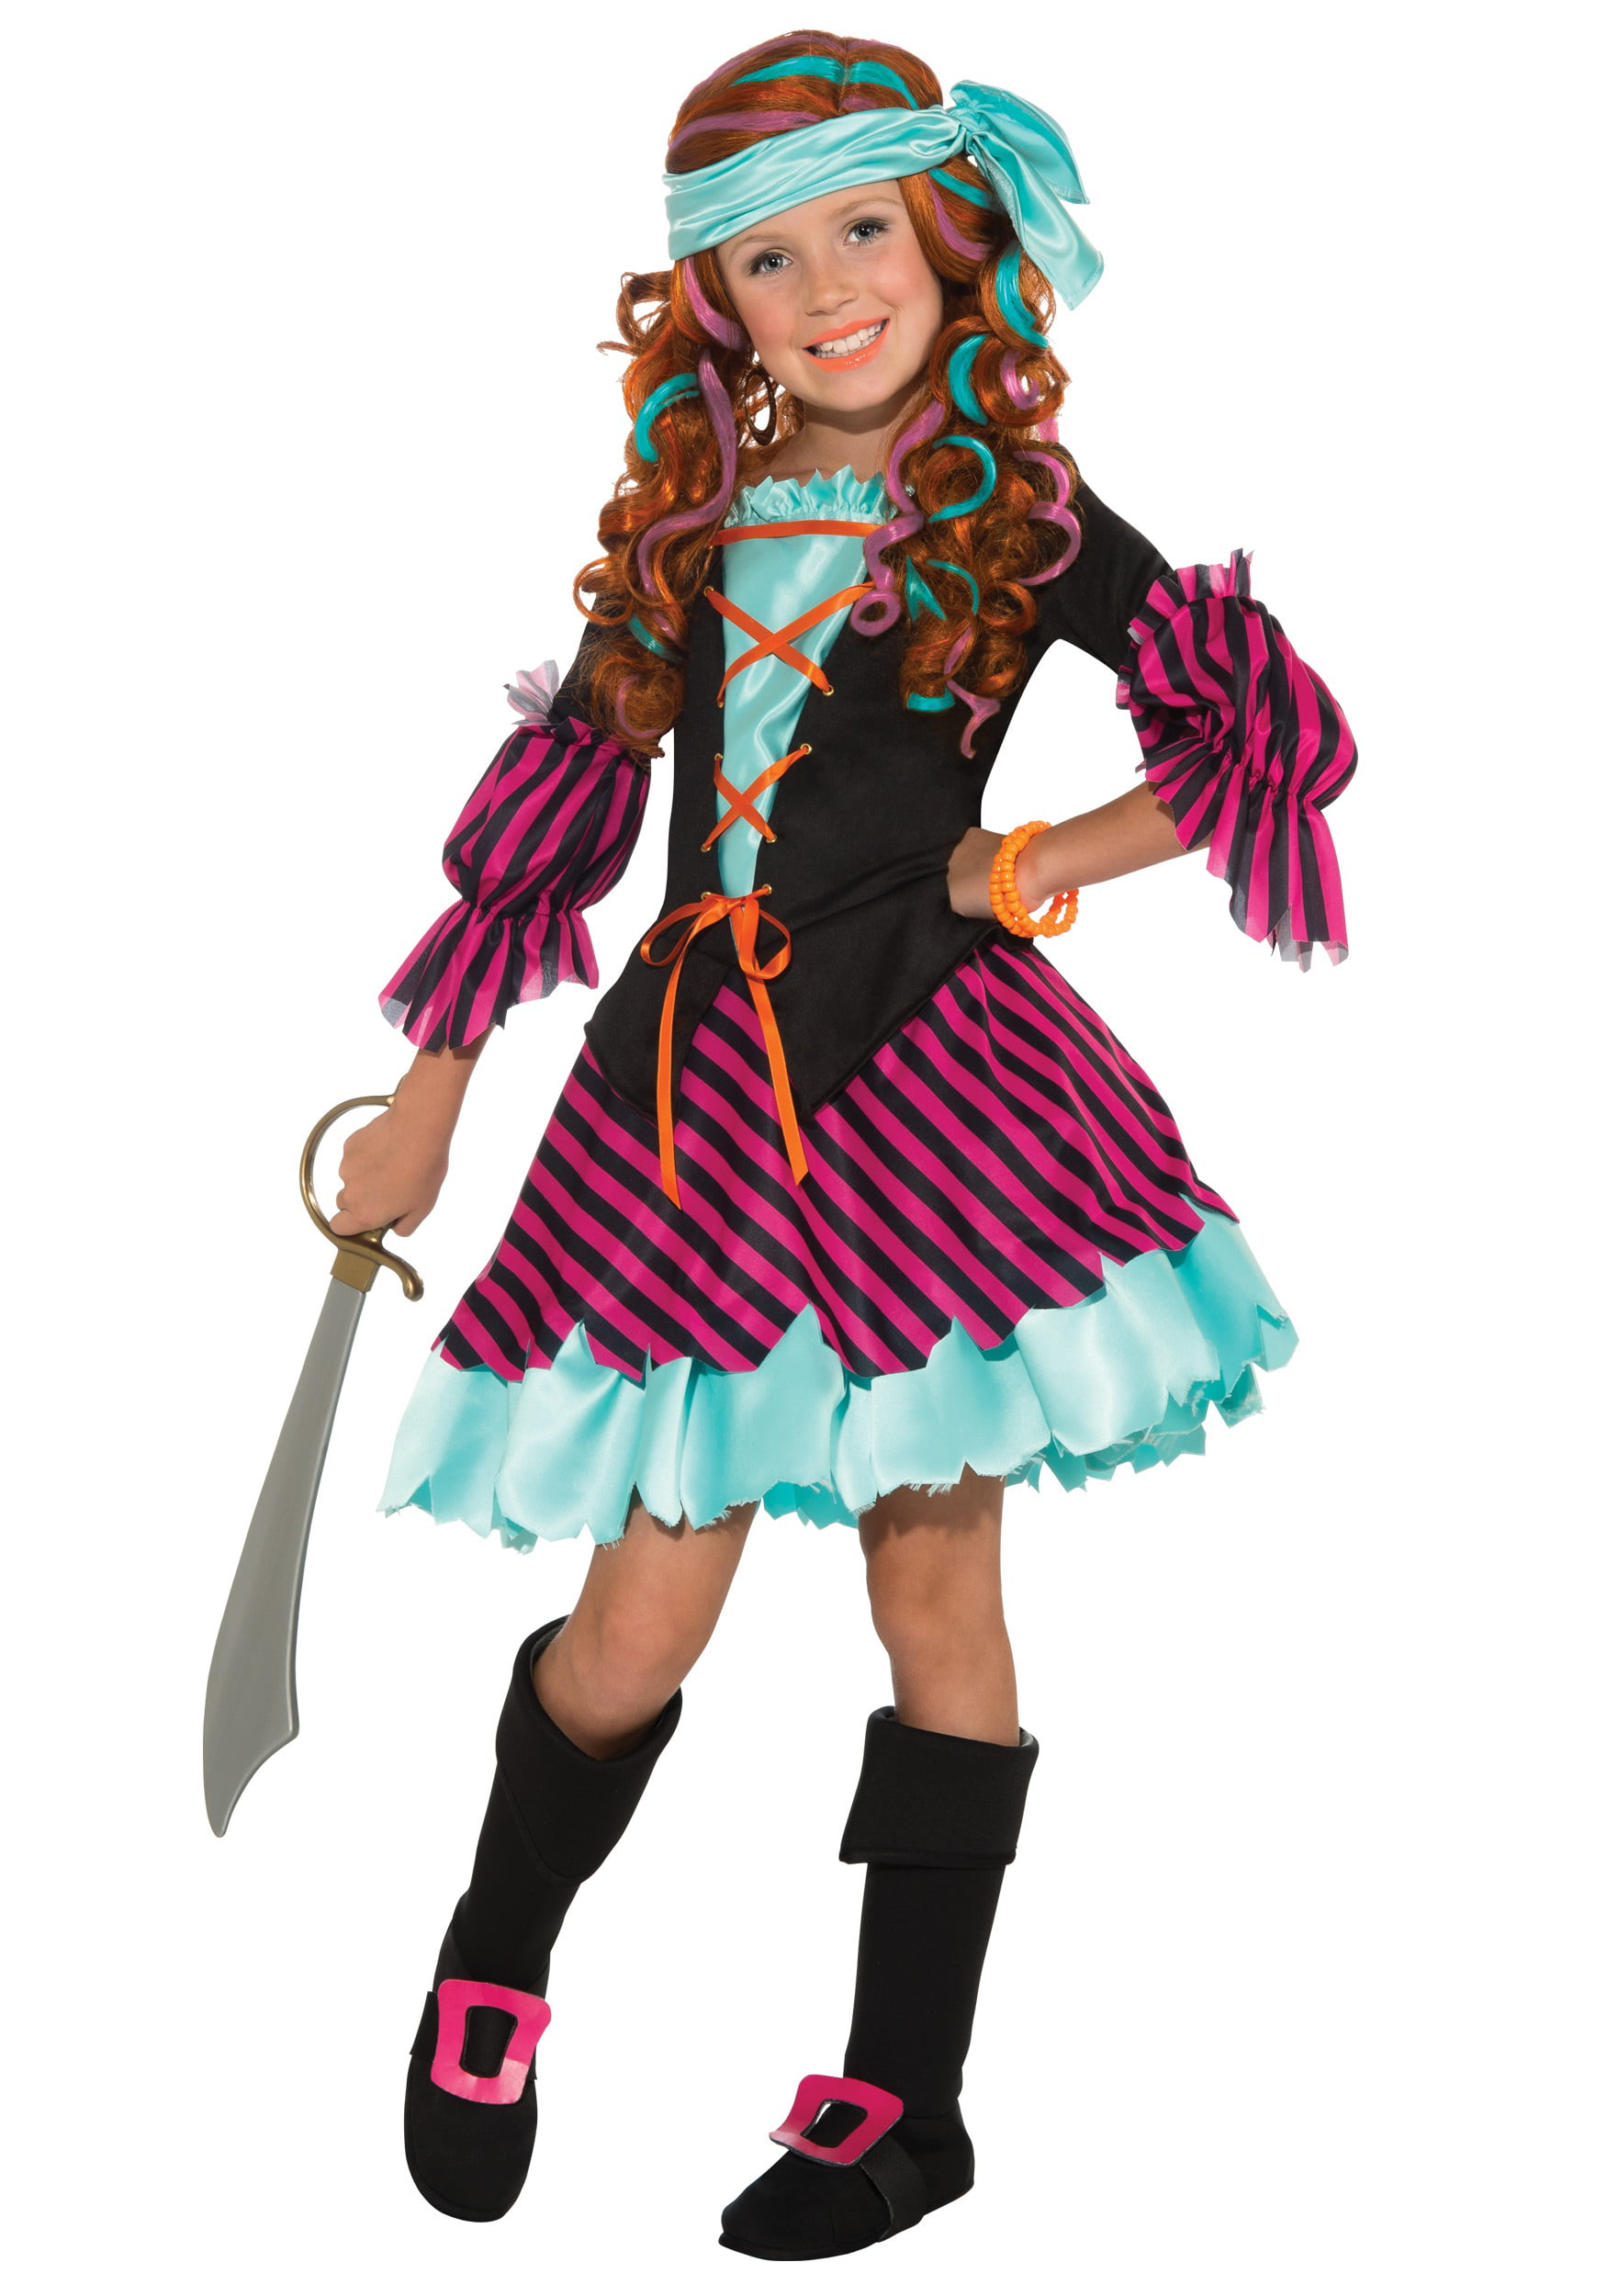 sc 1 st  Walmart & Salty Taffy Girls Pirate Costume - Walmart.com